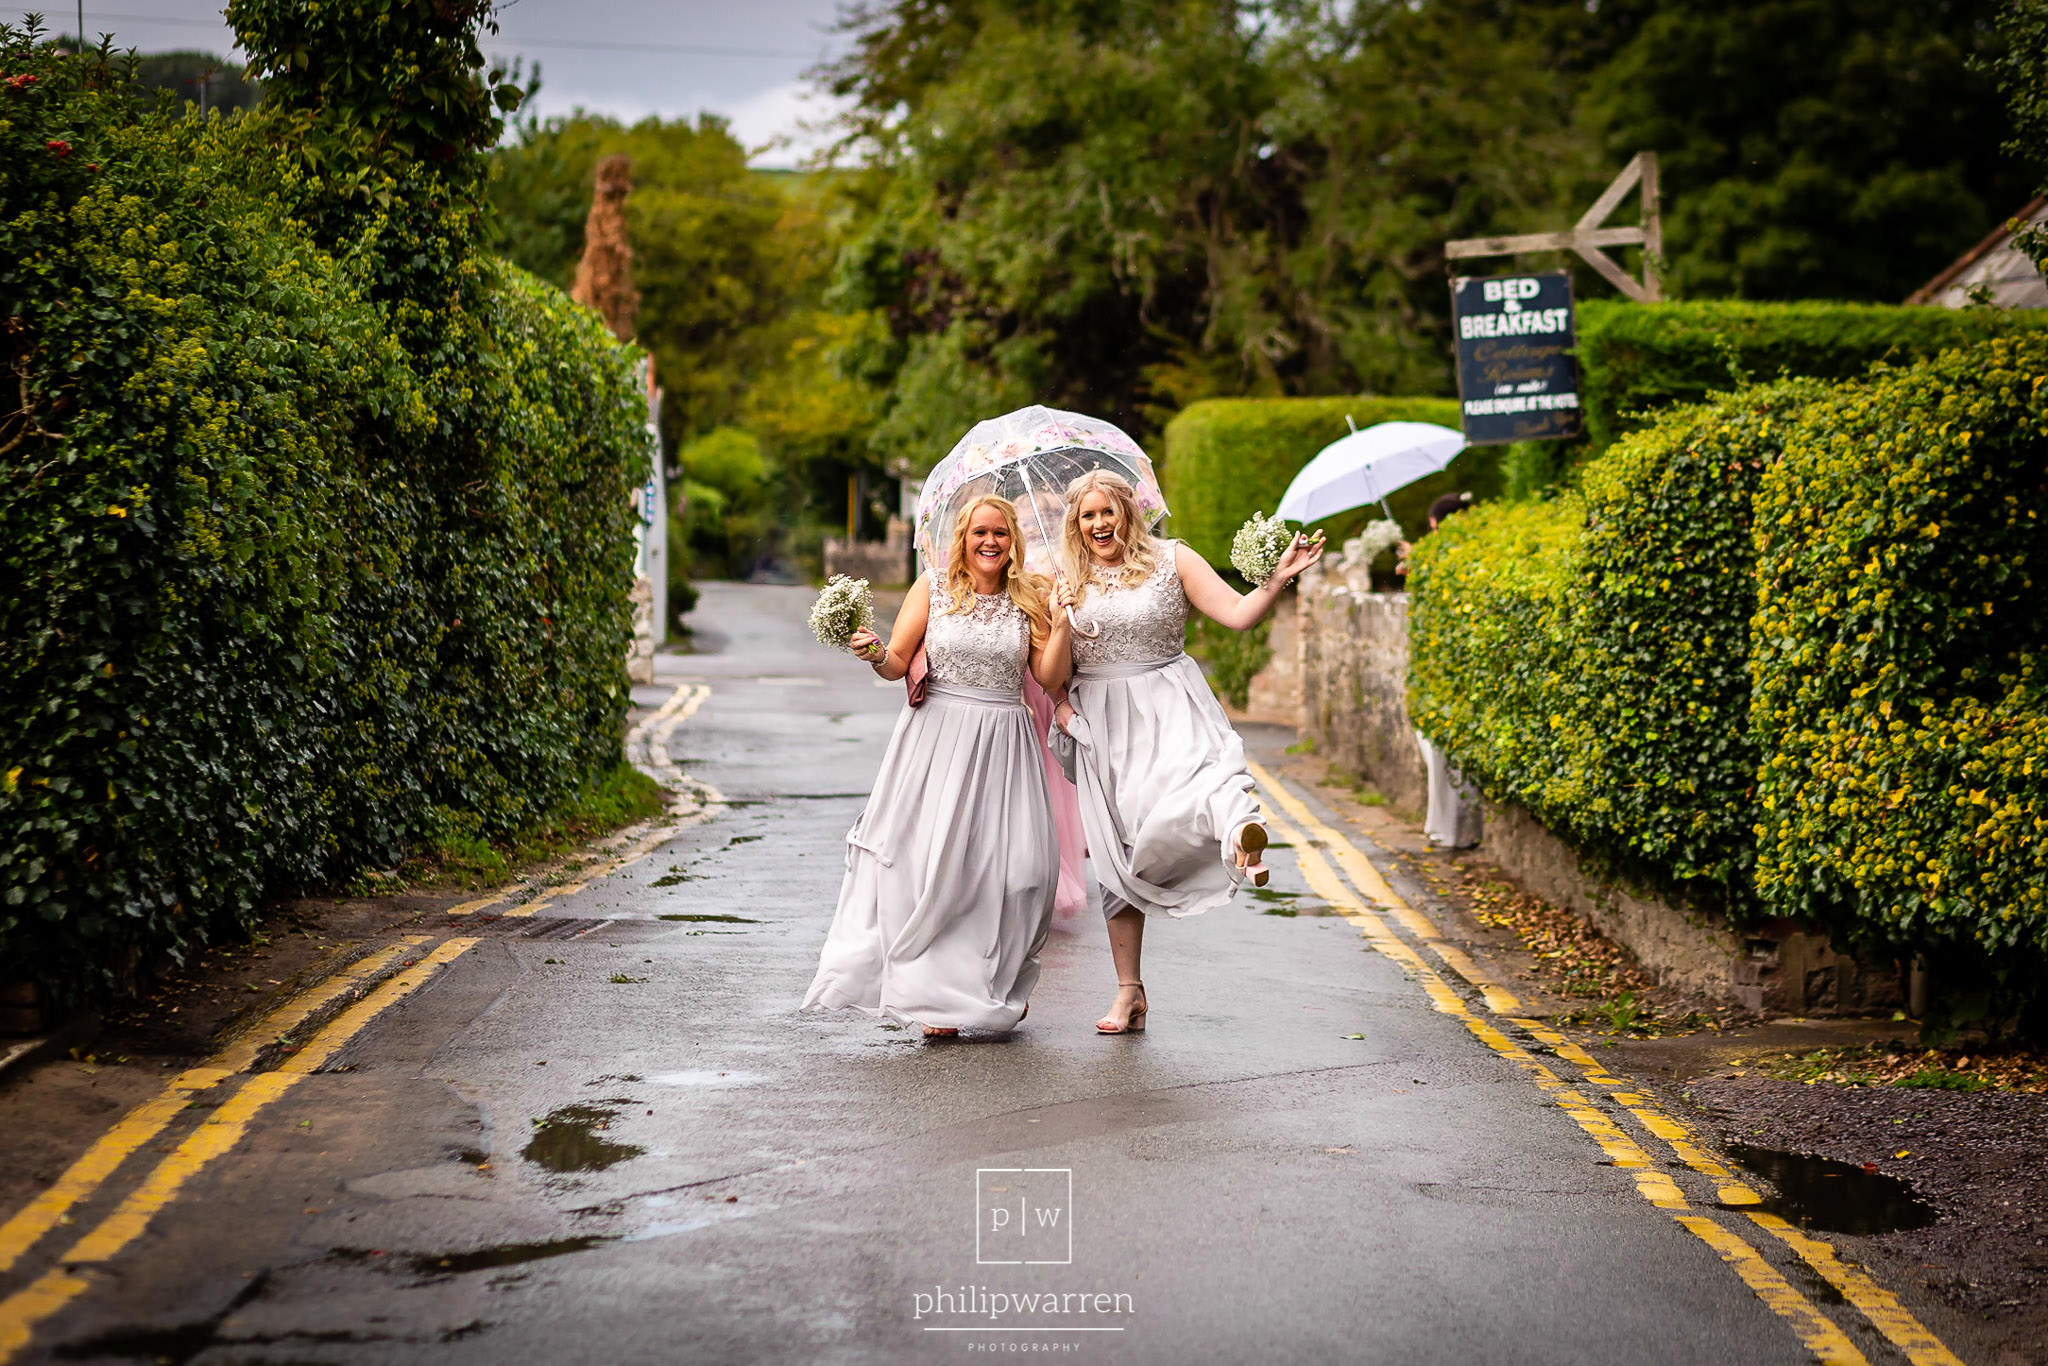 bridesmaids having fun with umbrellas